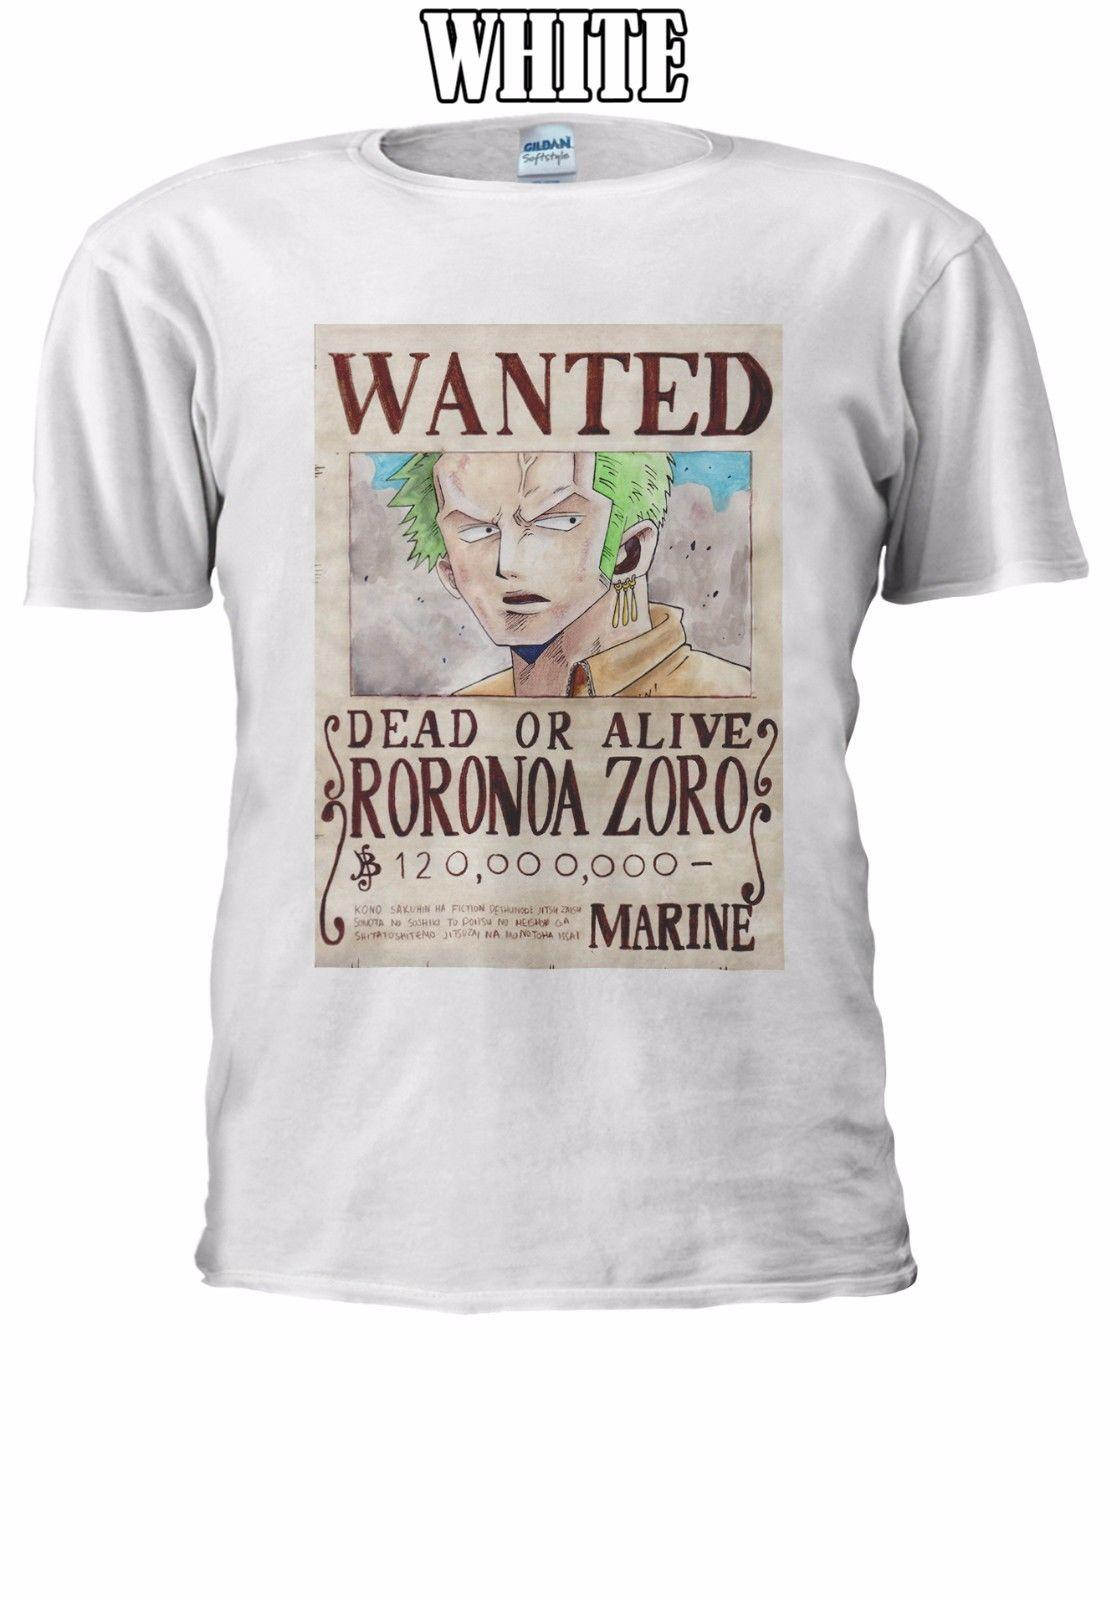 13bcd1cf70b9b9 One Piece Wanted Roronoa Zoro T Shirt Vest Tank Top Men Women Unisex Cool  Casual Pride T Shirt Men Unisex New Fashion Tshirt Cartoon T Shirts Urban T  Shirts ...